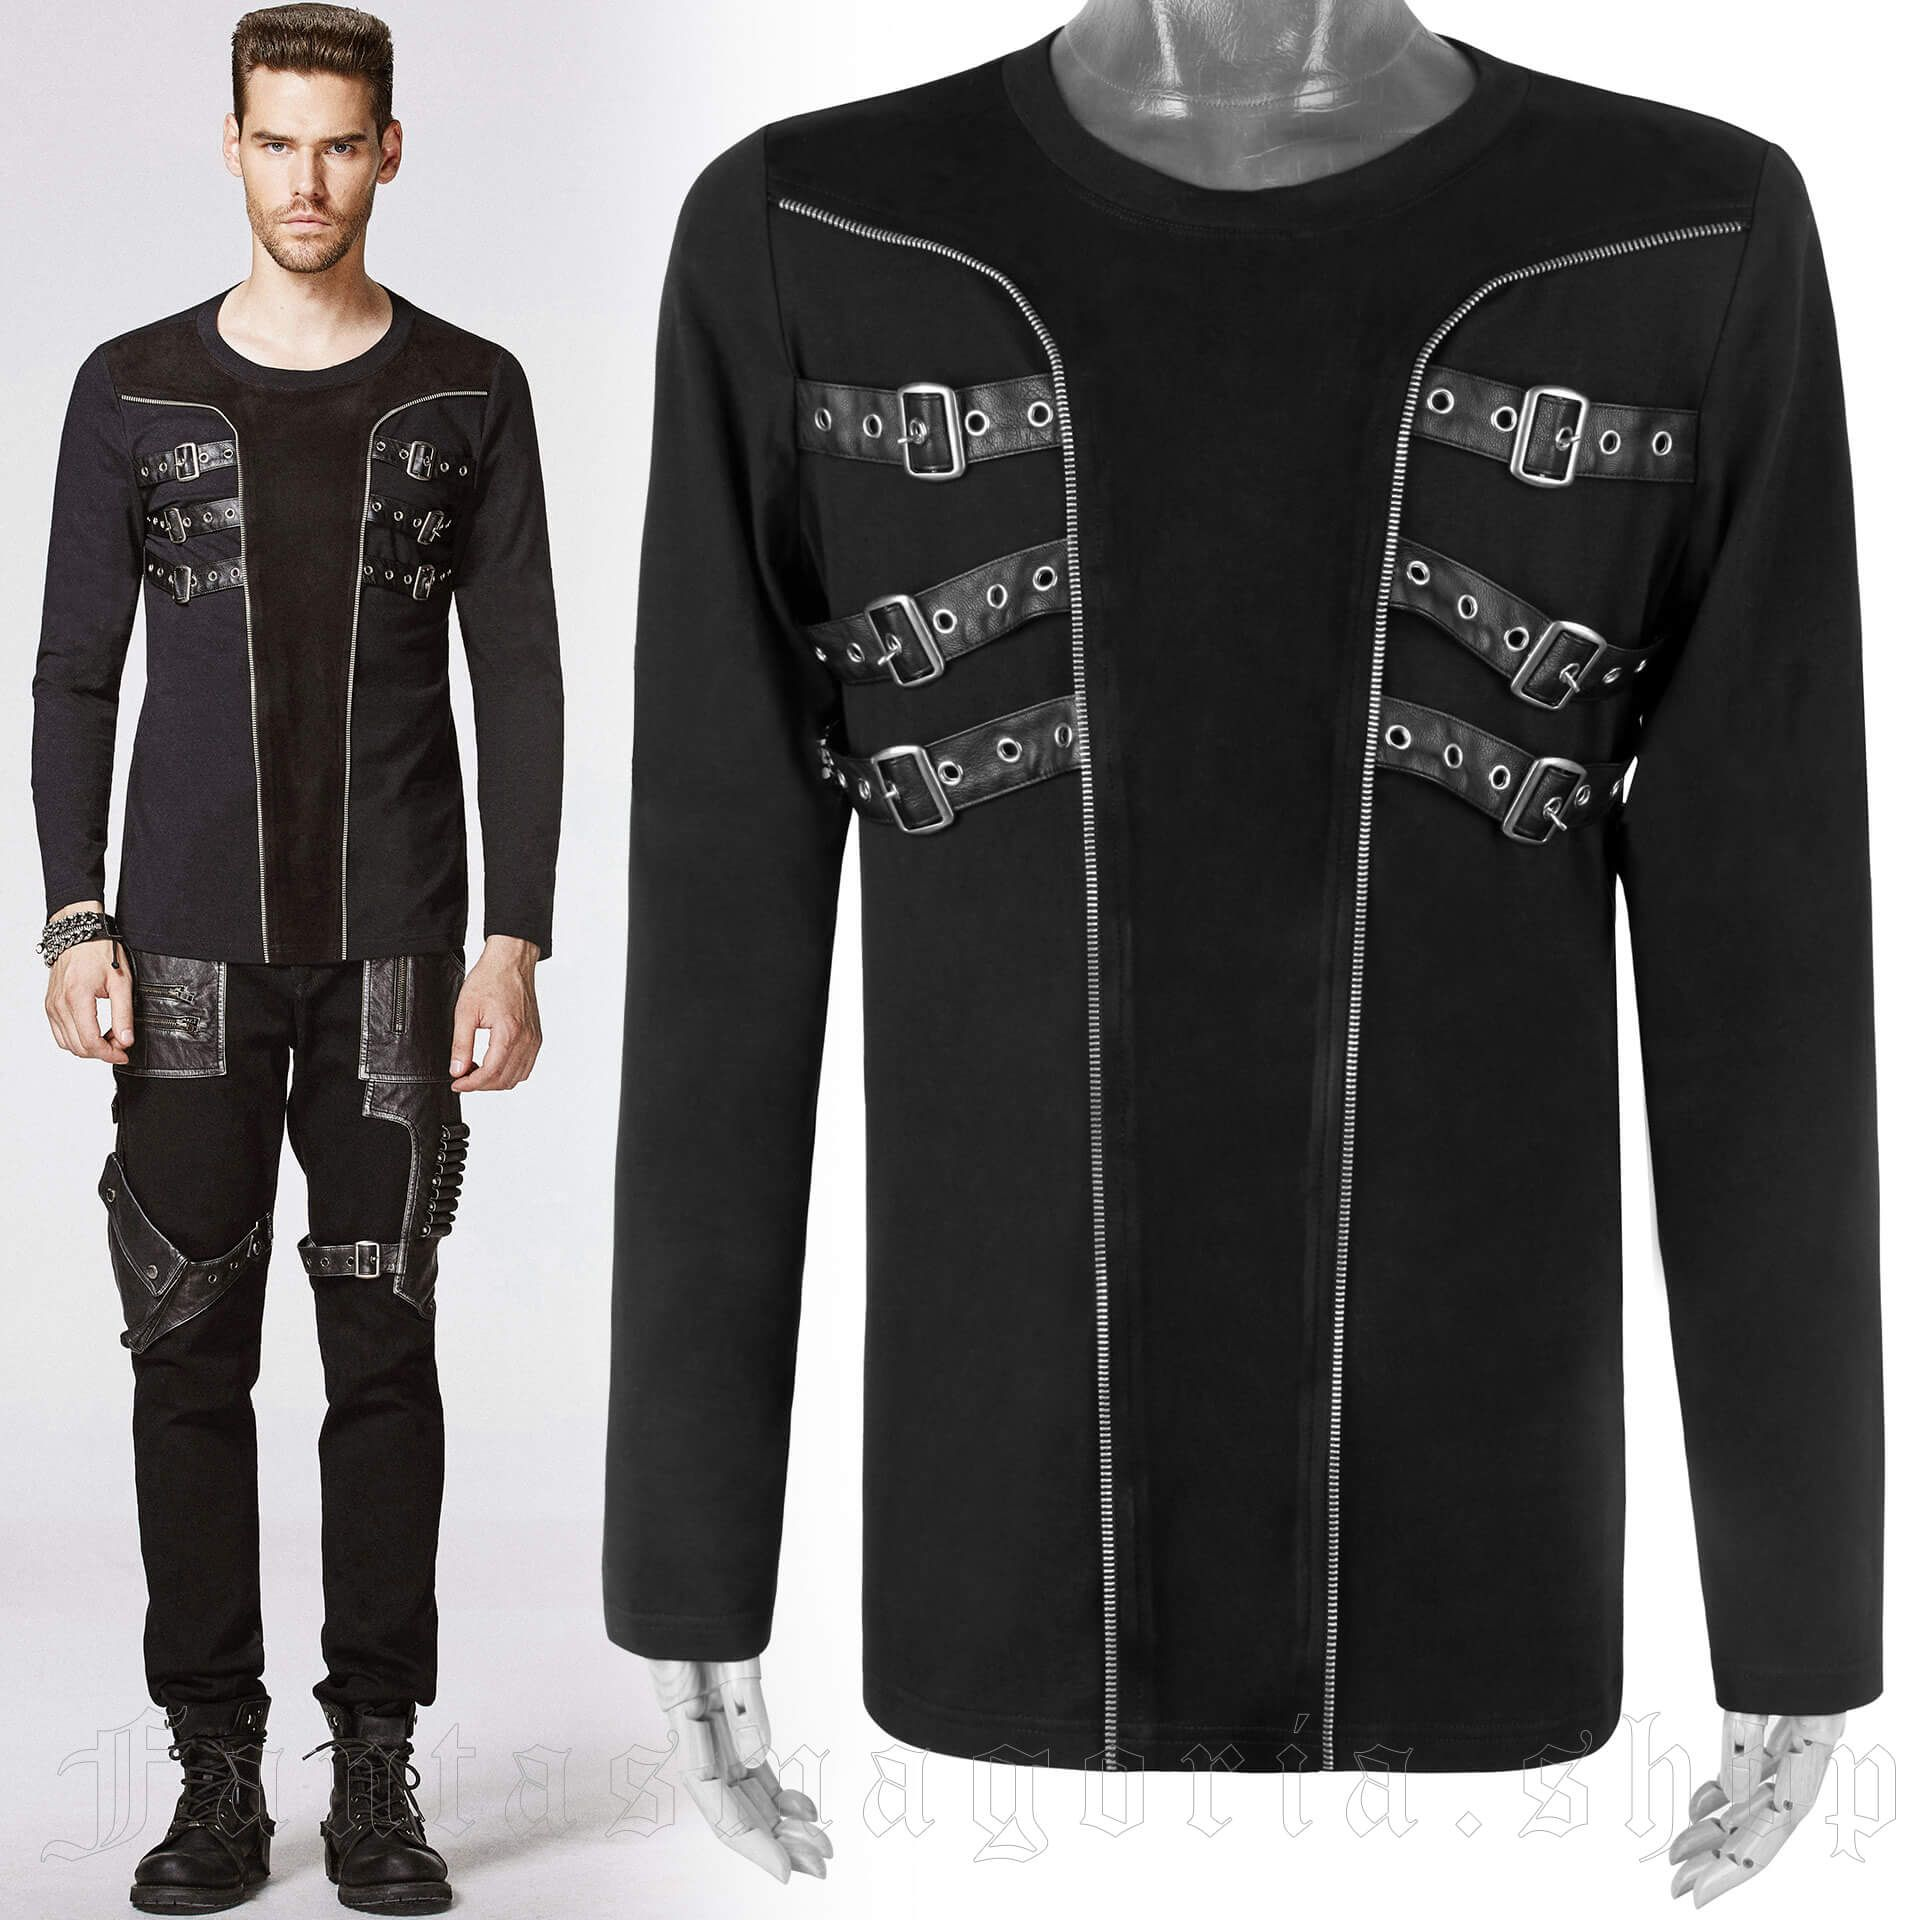 men's Incubus Longsleeve Top by PUNK RAVE brand, code: T-403